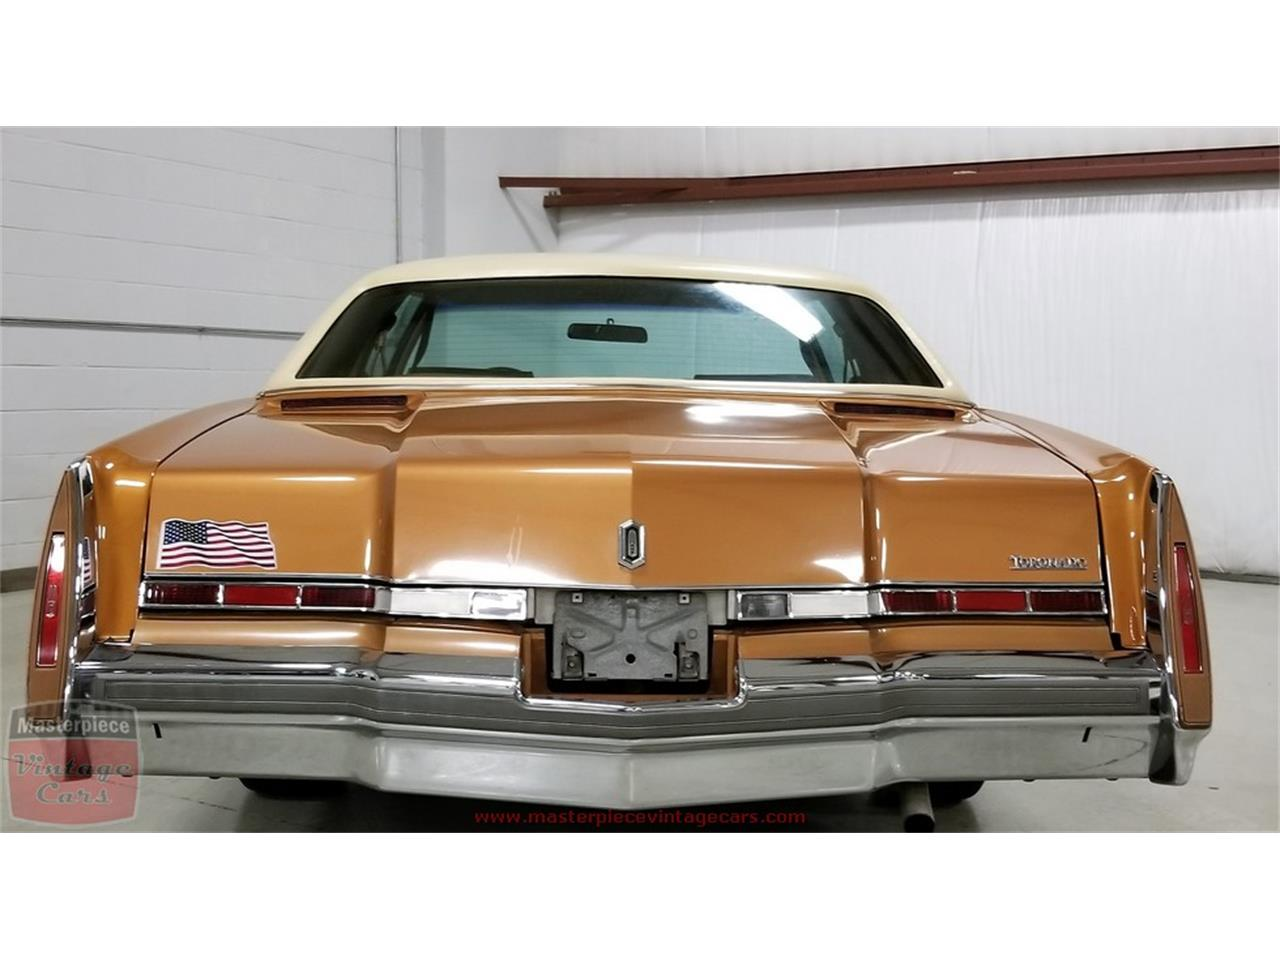 Large Picture of '78 Toronado located in Indiana - $10,900.00 Offered by Masterpiece Vintage Cars - QE6N